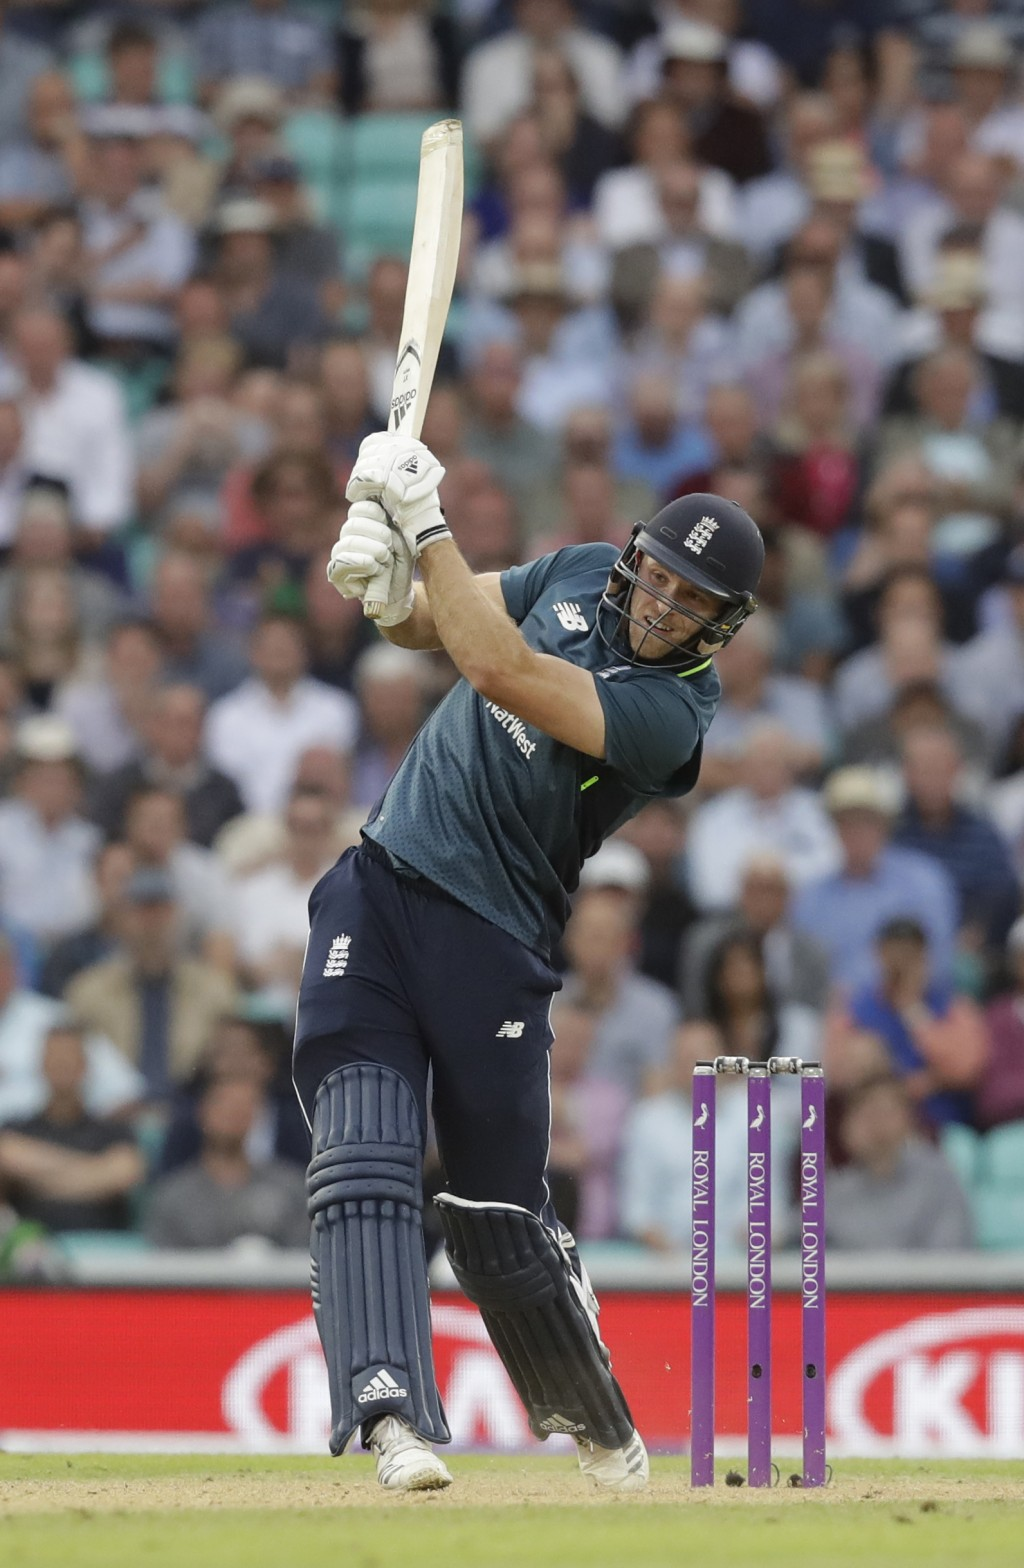 England's David Willey hits a six to win the match during the one-day cricket match between England and Australia at the Oval cricket ground in London